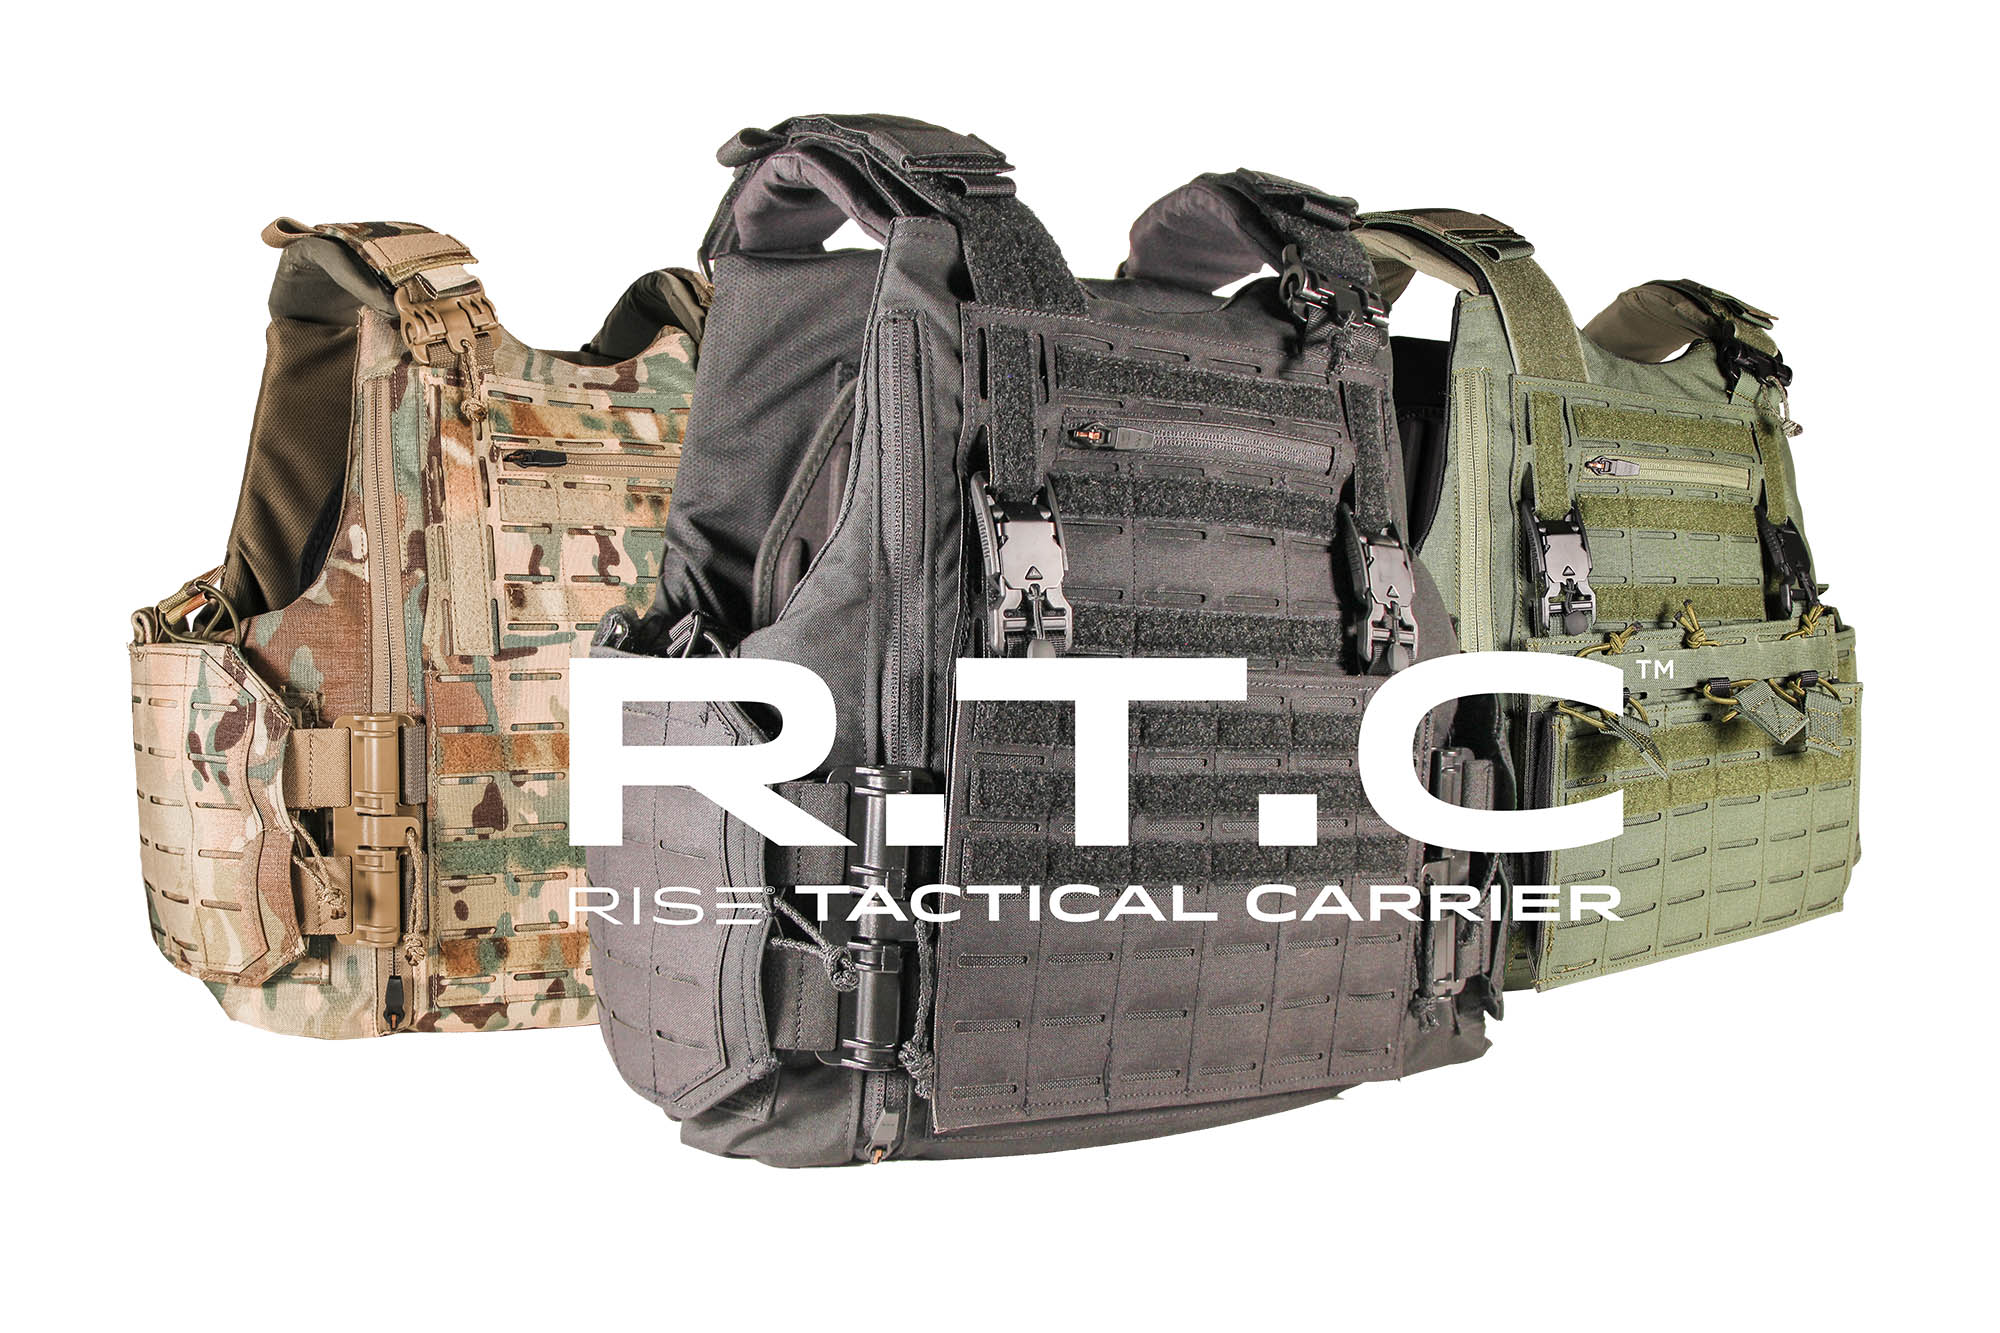 RISE™ Tactical Carrier (R.T.C.)